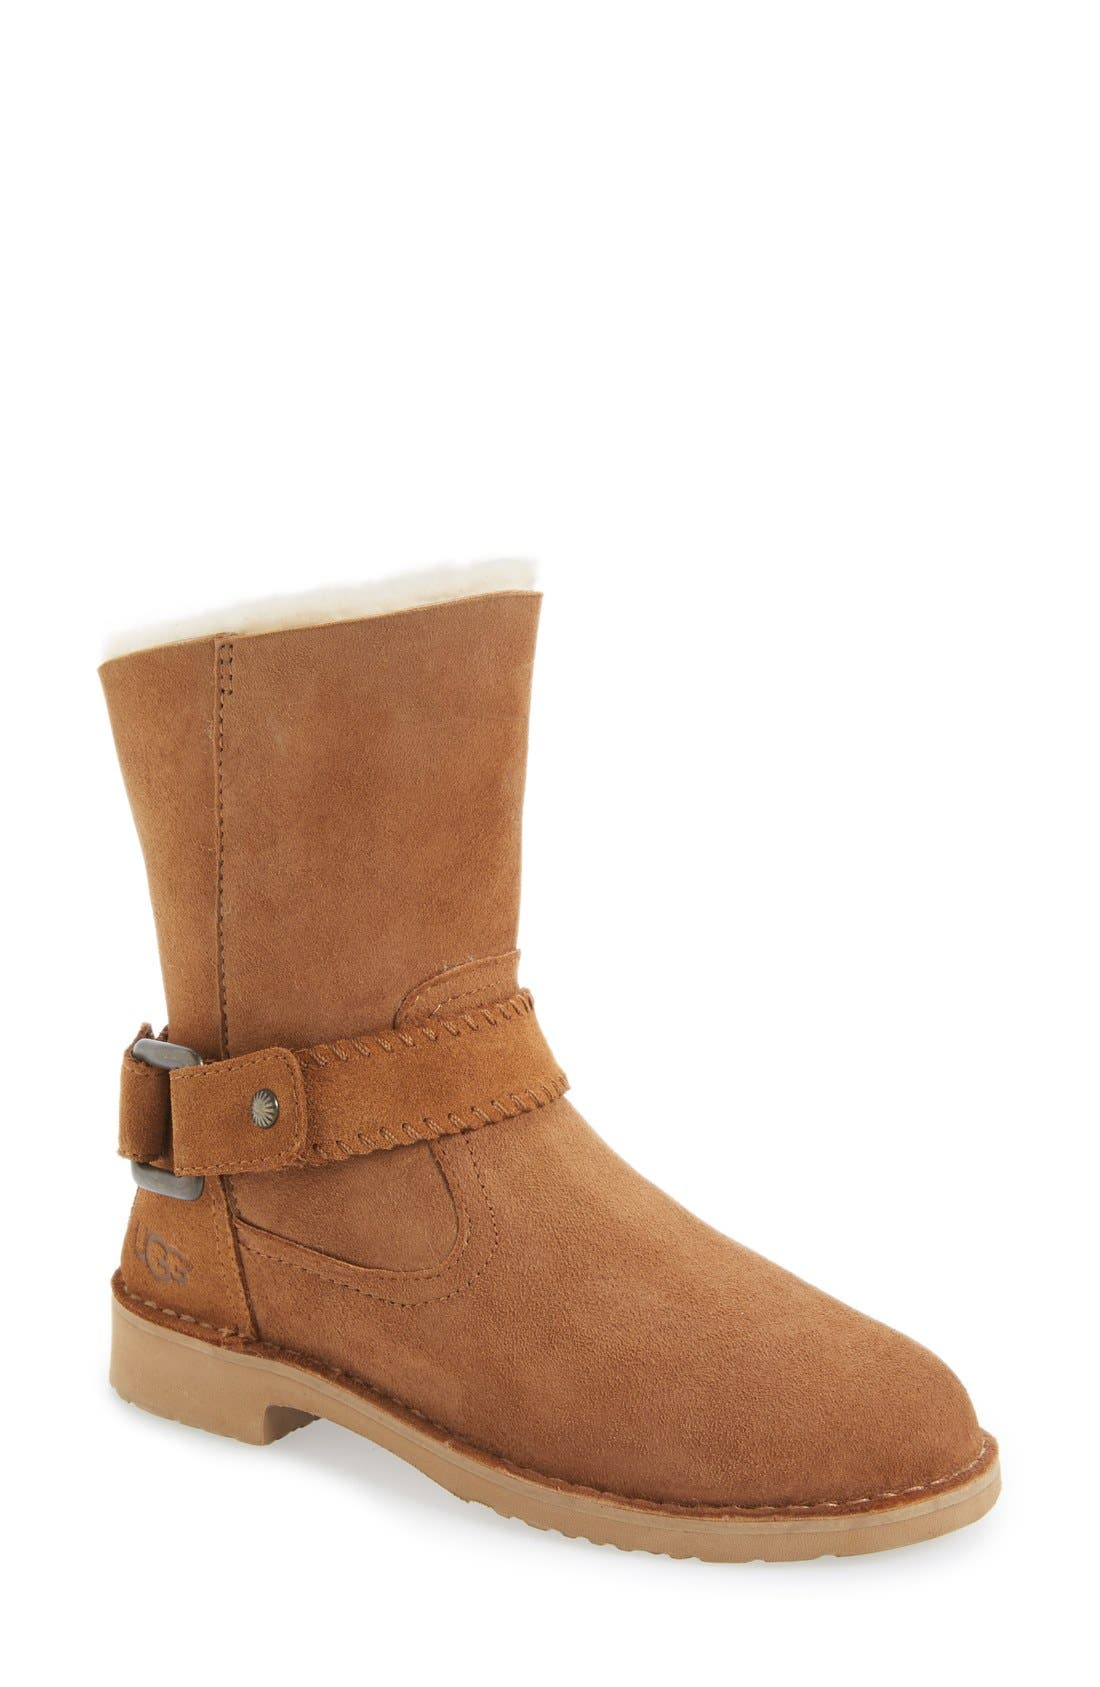 Alternate Image 1 Selected - UGG® Cedric Water Resistant Boot (Women)